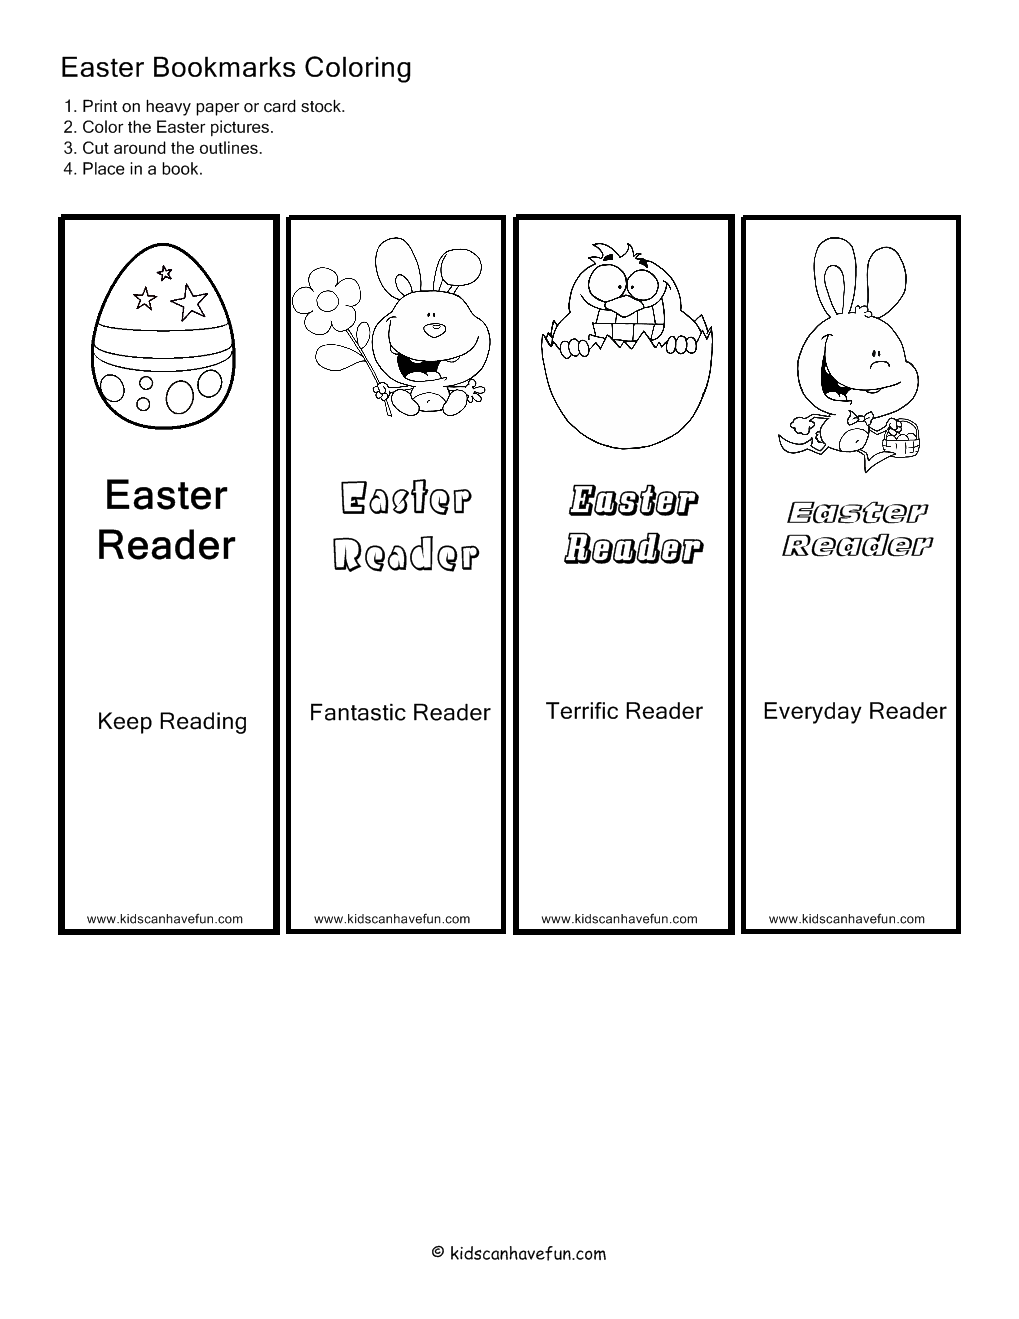 7 Images of Printable Easter Bookmarks To Color